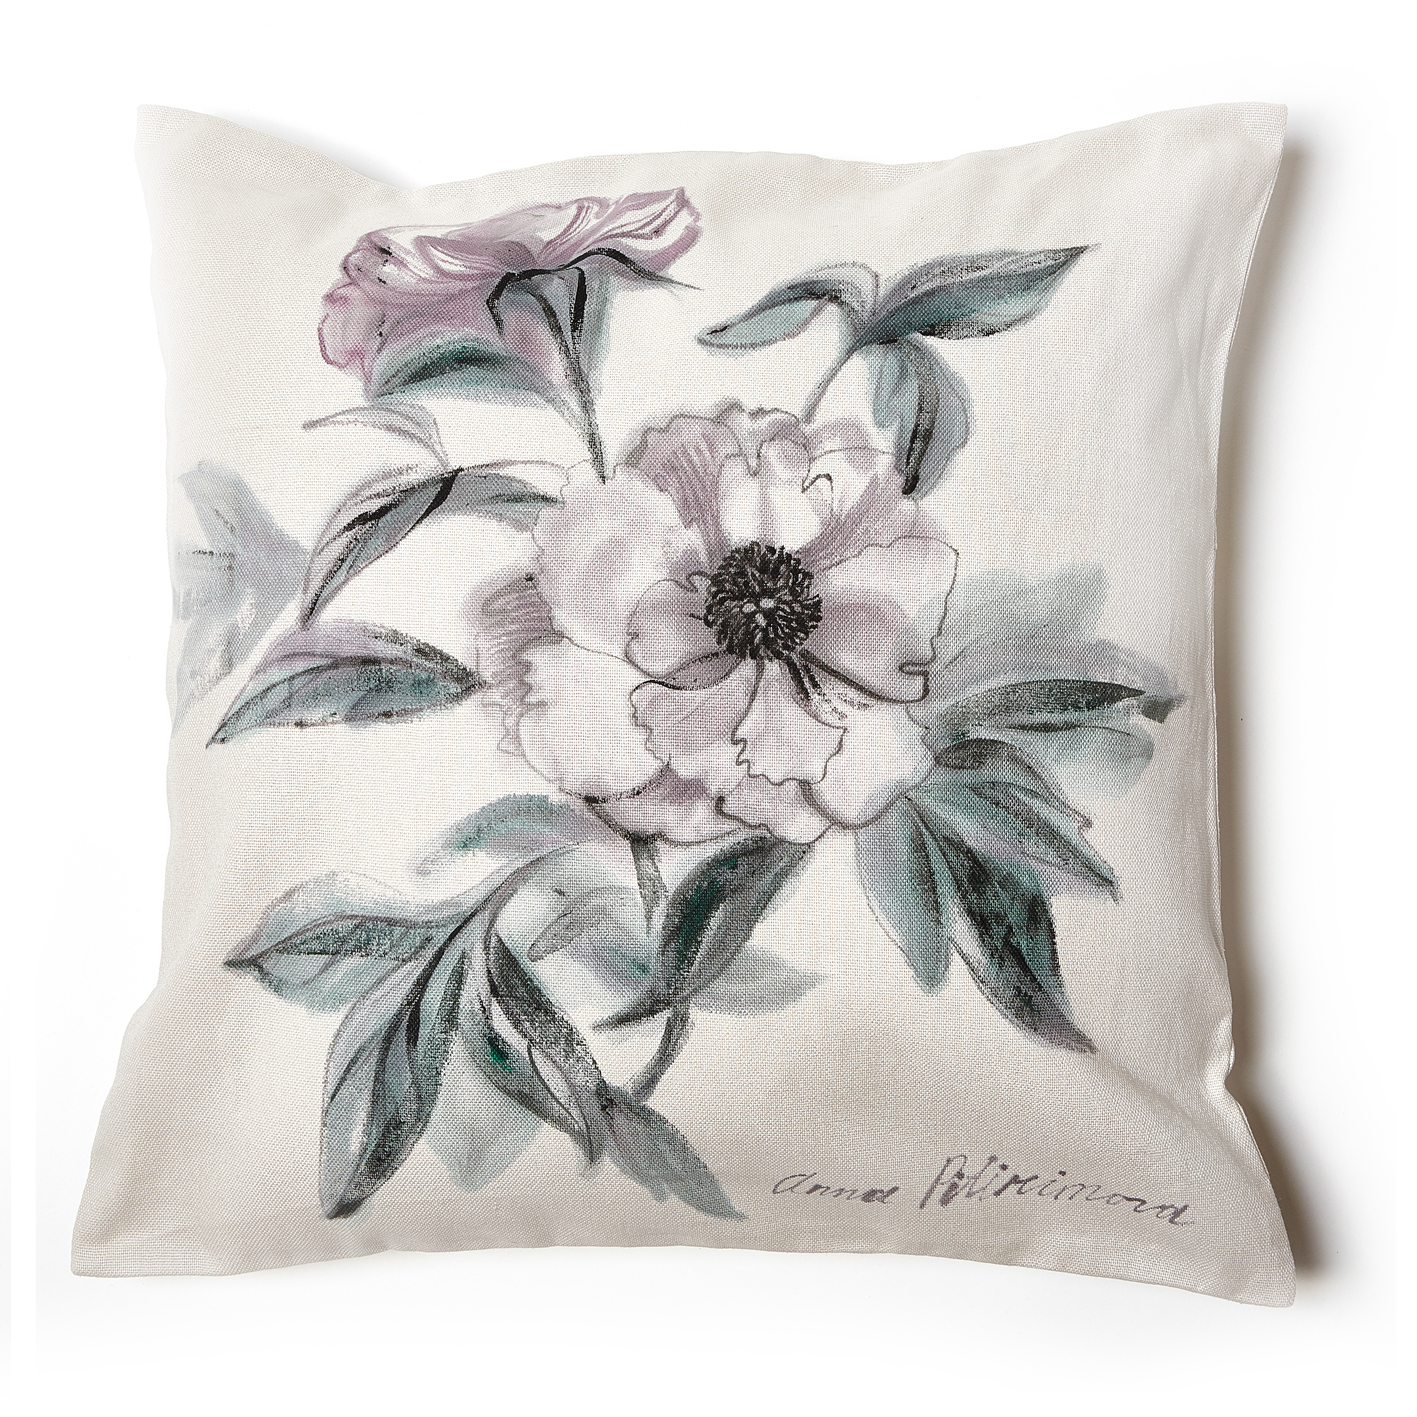 Peony. Provence collection. 50×50cm. Cotton 100%.  Avaliable in different sizes and colors